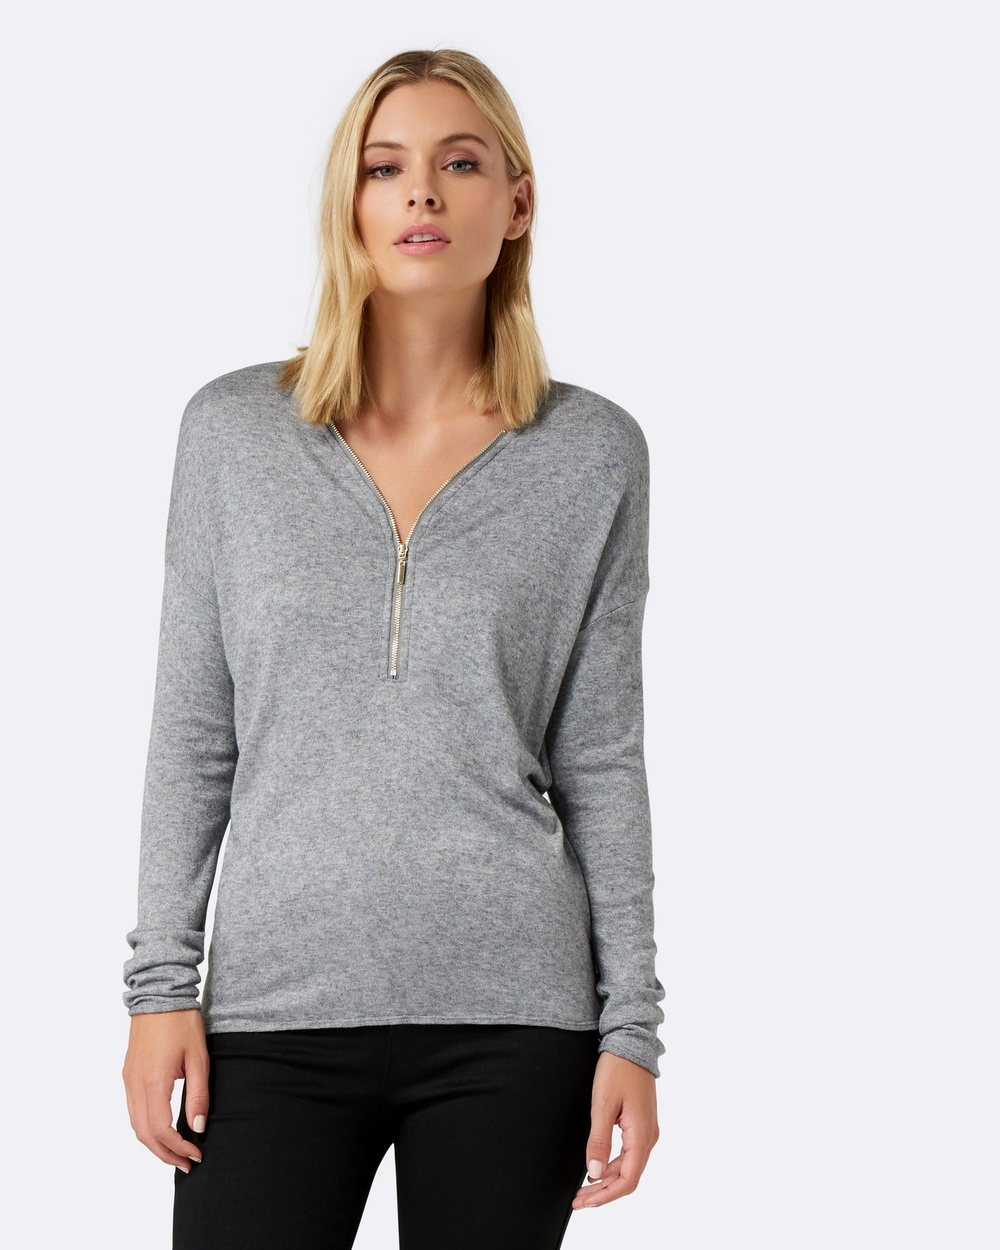 Photo of Forever New Forever New Ranee Zip Front Cut and Sew Top Tops Grey Marl Ranee Zip Front Cut and Sew Top - PLEASE NOTE: THE ICONIC IS UNABLE TO SHIP THIS PRODUCT TO NEW ZEALANDKnown for their signature feminine style, Forever New designs are created to celebrate the beauty of the female figure. Defined by a versatile collection of pieces that will have you stepping out with confidence, look to the brand for tailored separates, classic gowns, effortless party dresses and po